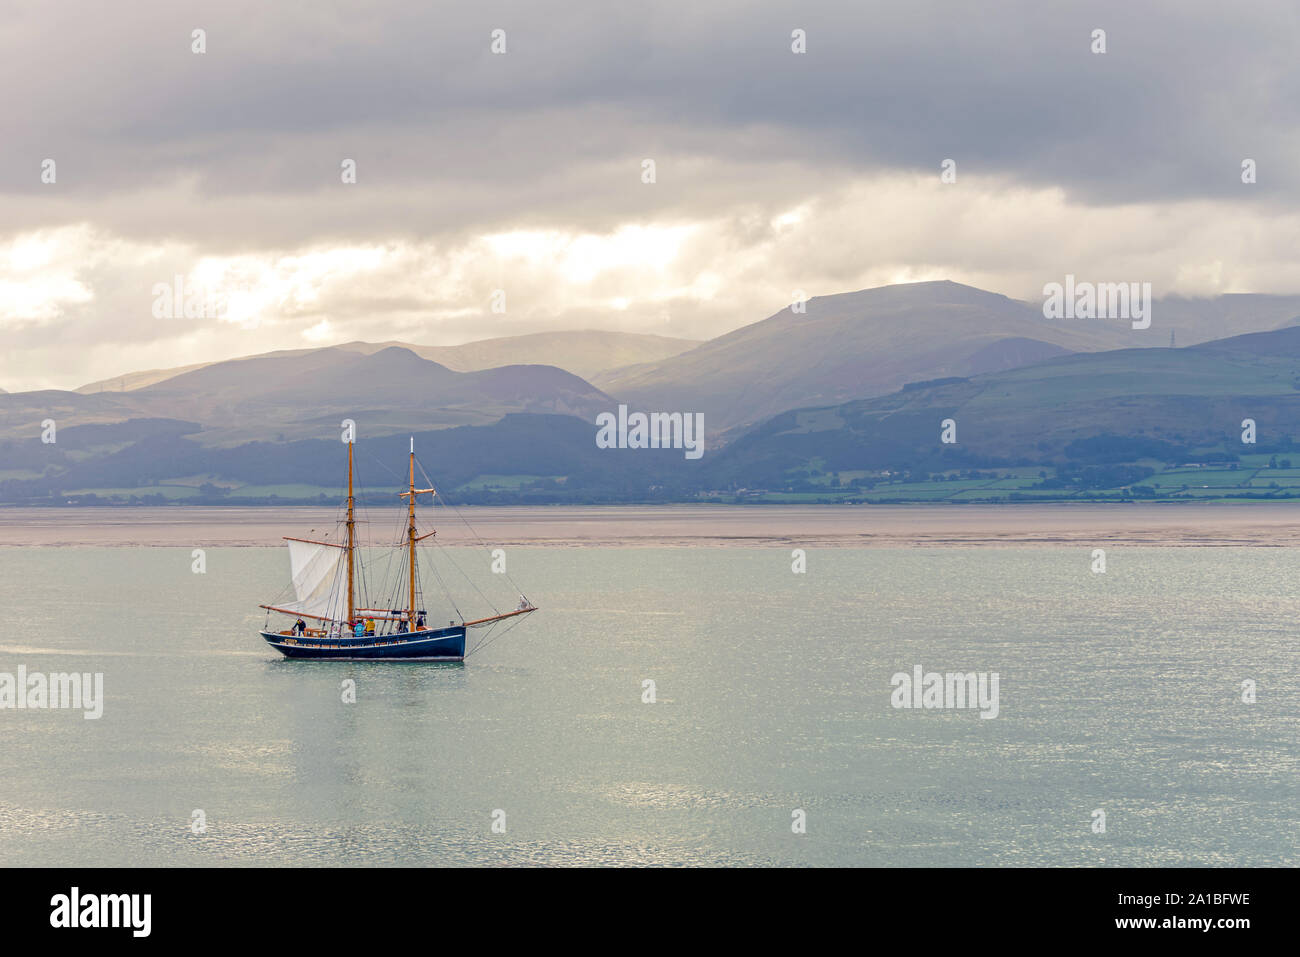 The Menai Strait at Beaumaris.  A sailing ship manoeuvres against a backdrops of cloud topped hills. Stock Photo